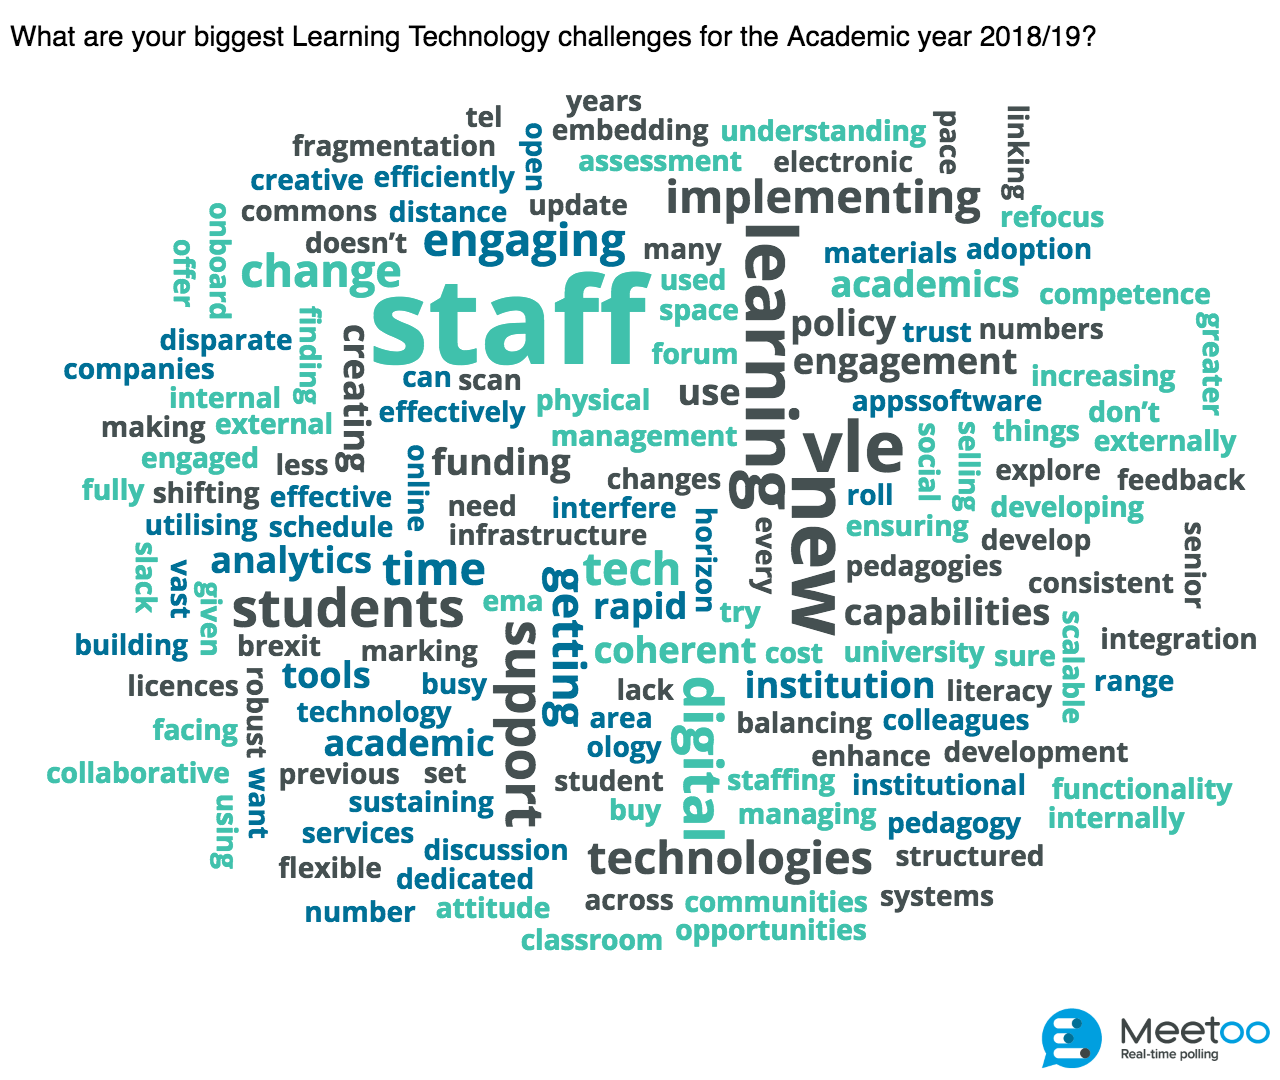 What are the main learning technology challenges that universities will face in 2019?